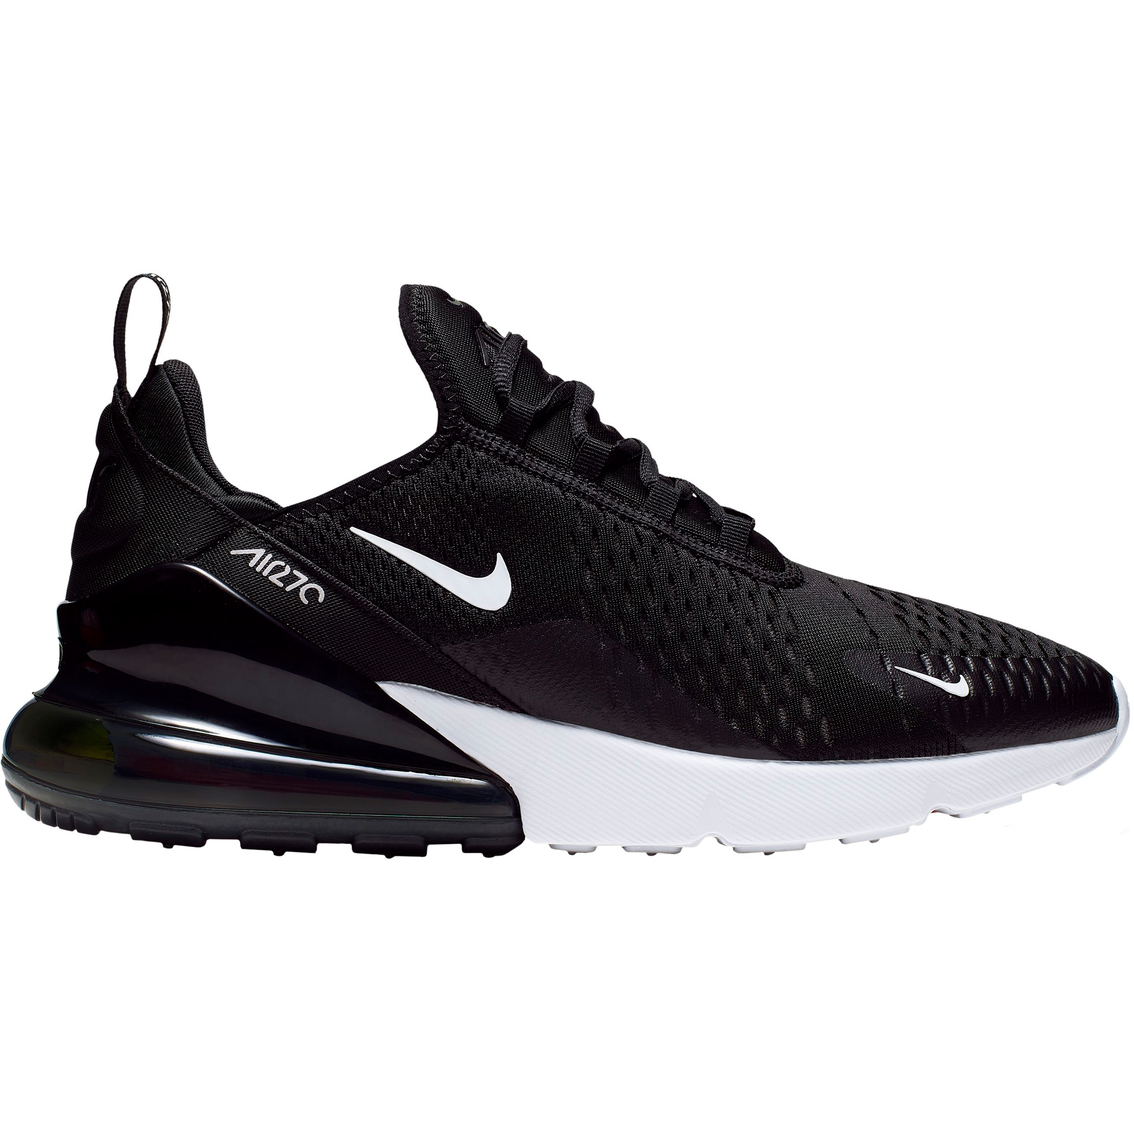 Nike Men's Air Max 270 Athleisure Shoes | Sneakers | Shoes | Shop ...